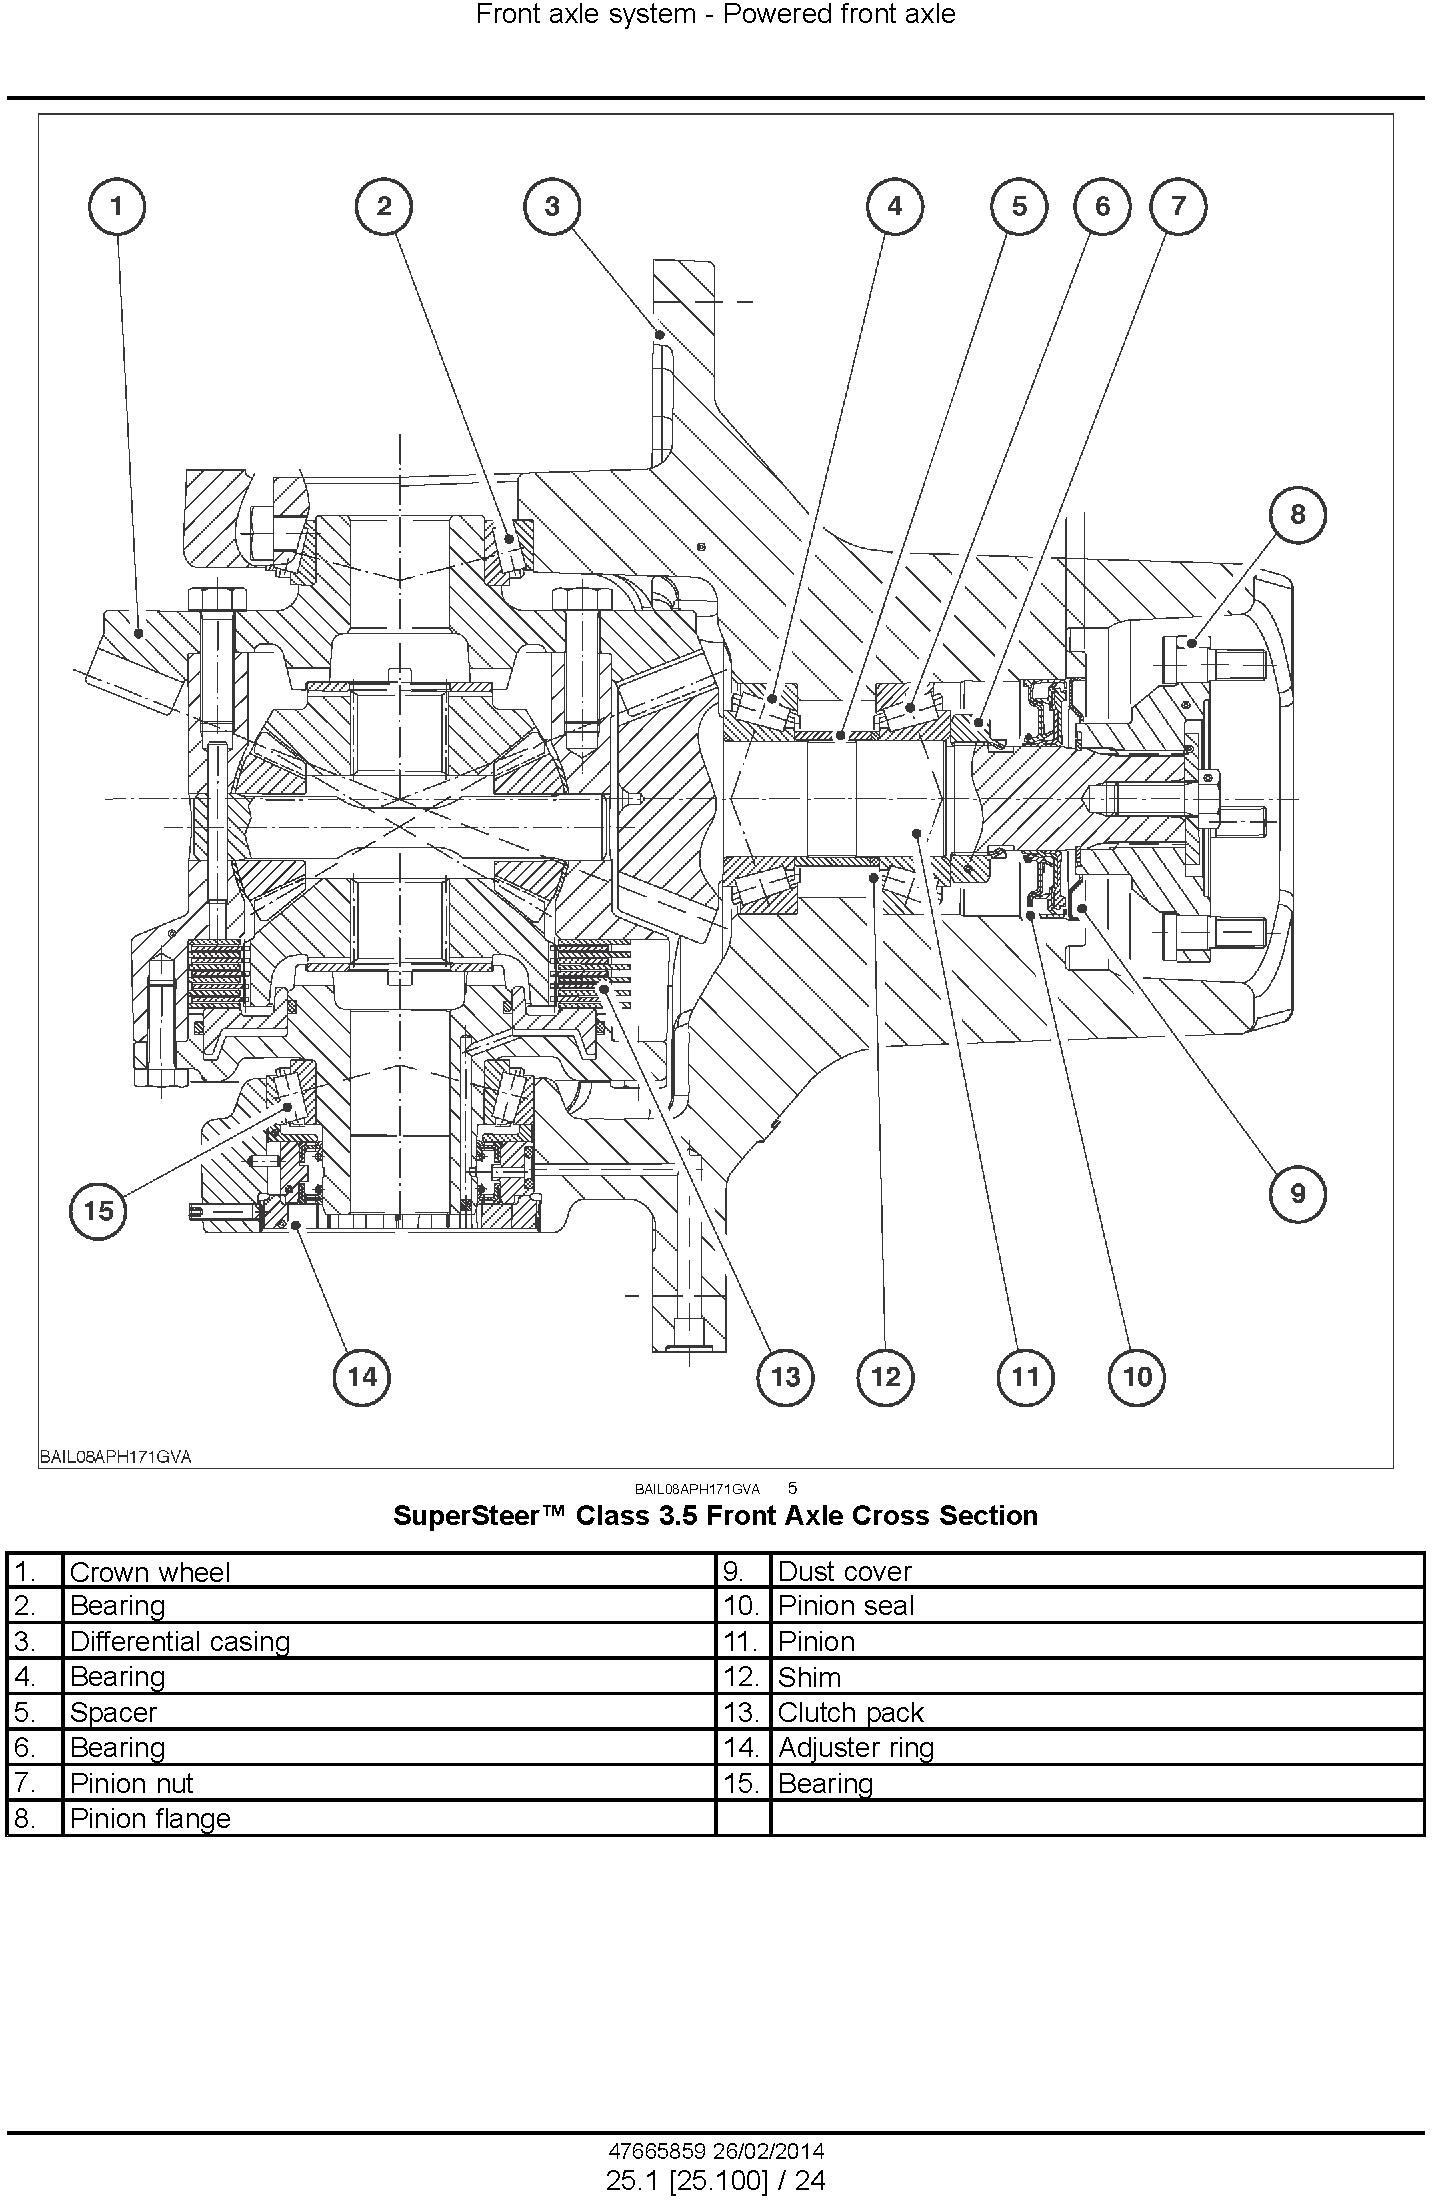 New Holland T6.120, T6.140, T6.150, T6.155, T6.160, T6.165, T6.175 European Tractor Service Manual - 3